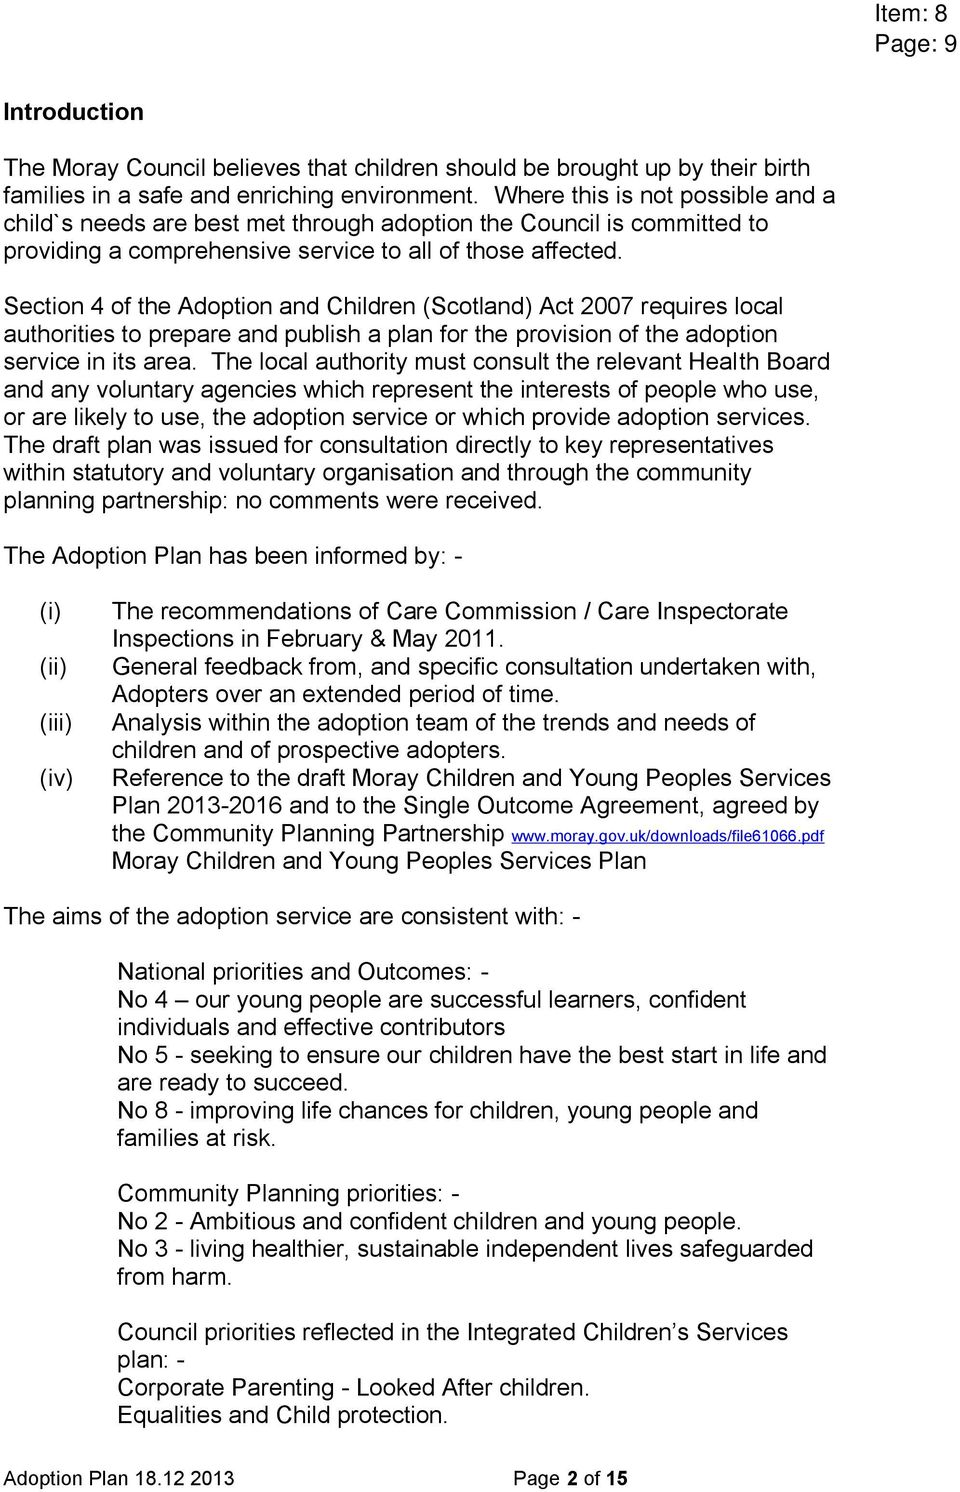 Section 4 of the Adoption and Children (Scotland) Act 2007 requires local authorities to prepare and publish a plan for the provision of the adoption service in its area.